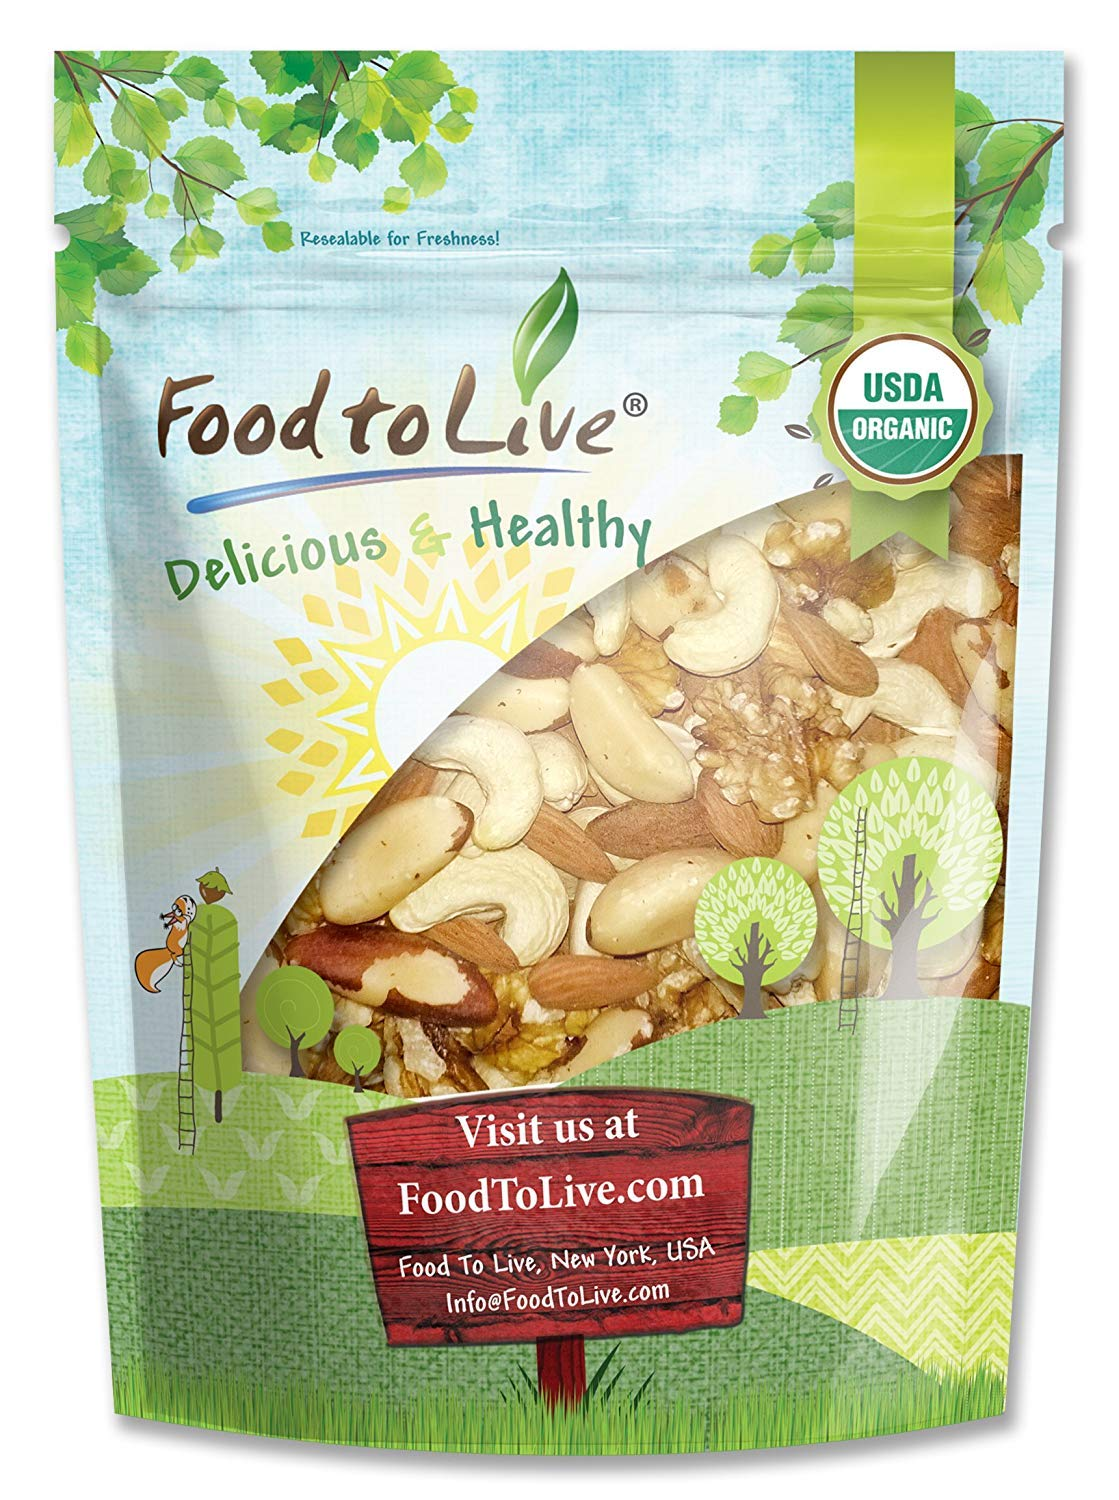 Healthy Mix of Certified Organic Raw Nuts by Food to Live (Cashews, Brazil Nuts, Walnuts, Almonds), Unsalted, Bulk — 4 Pounds